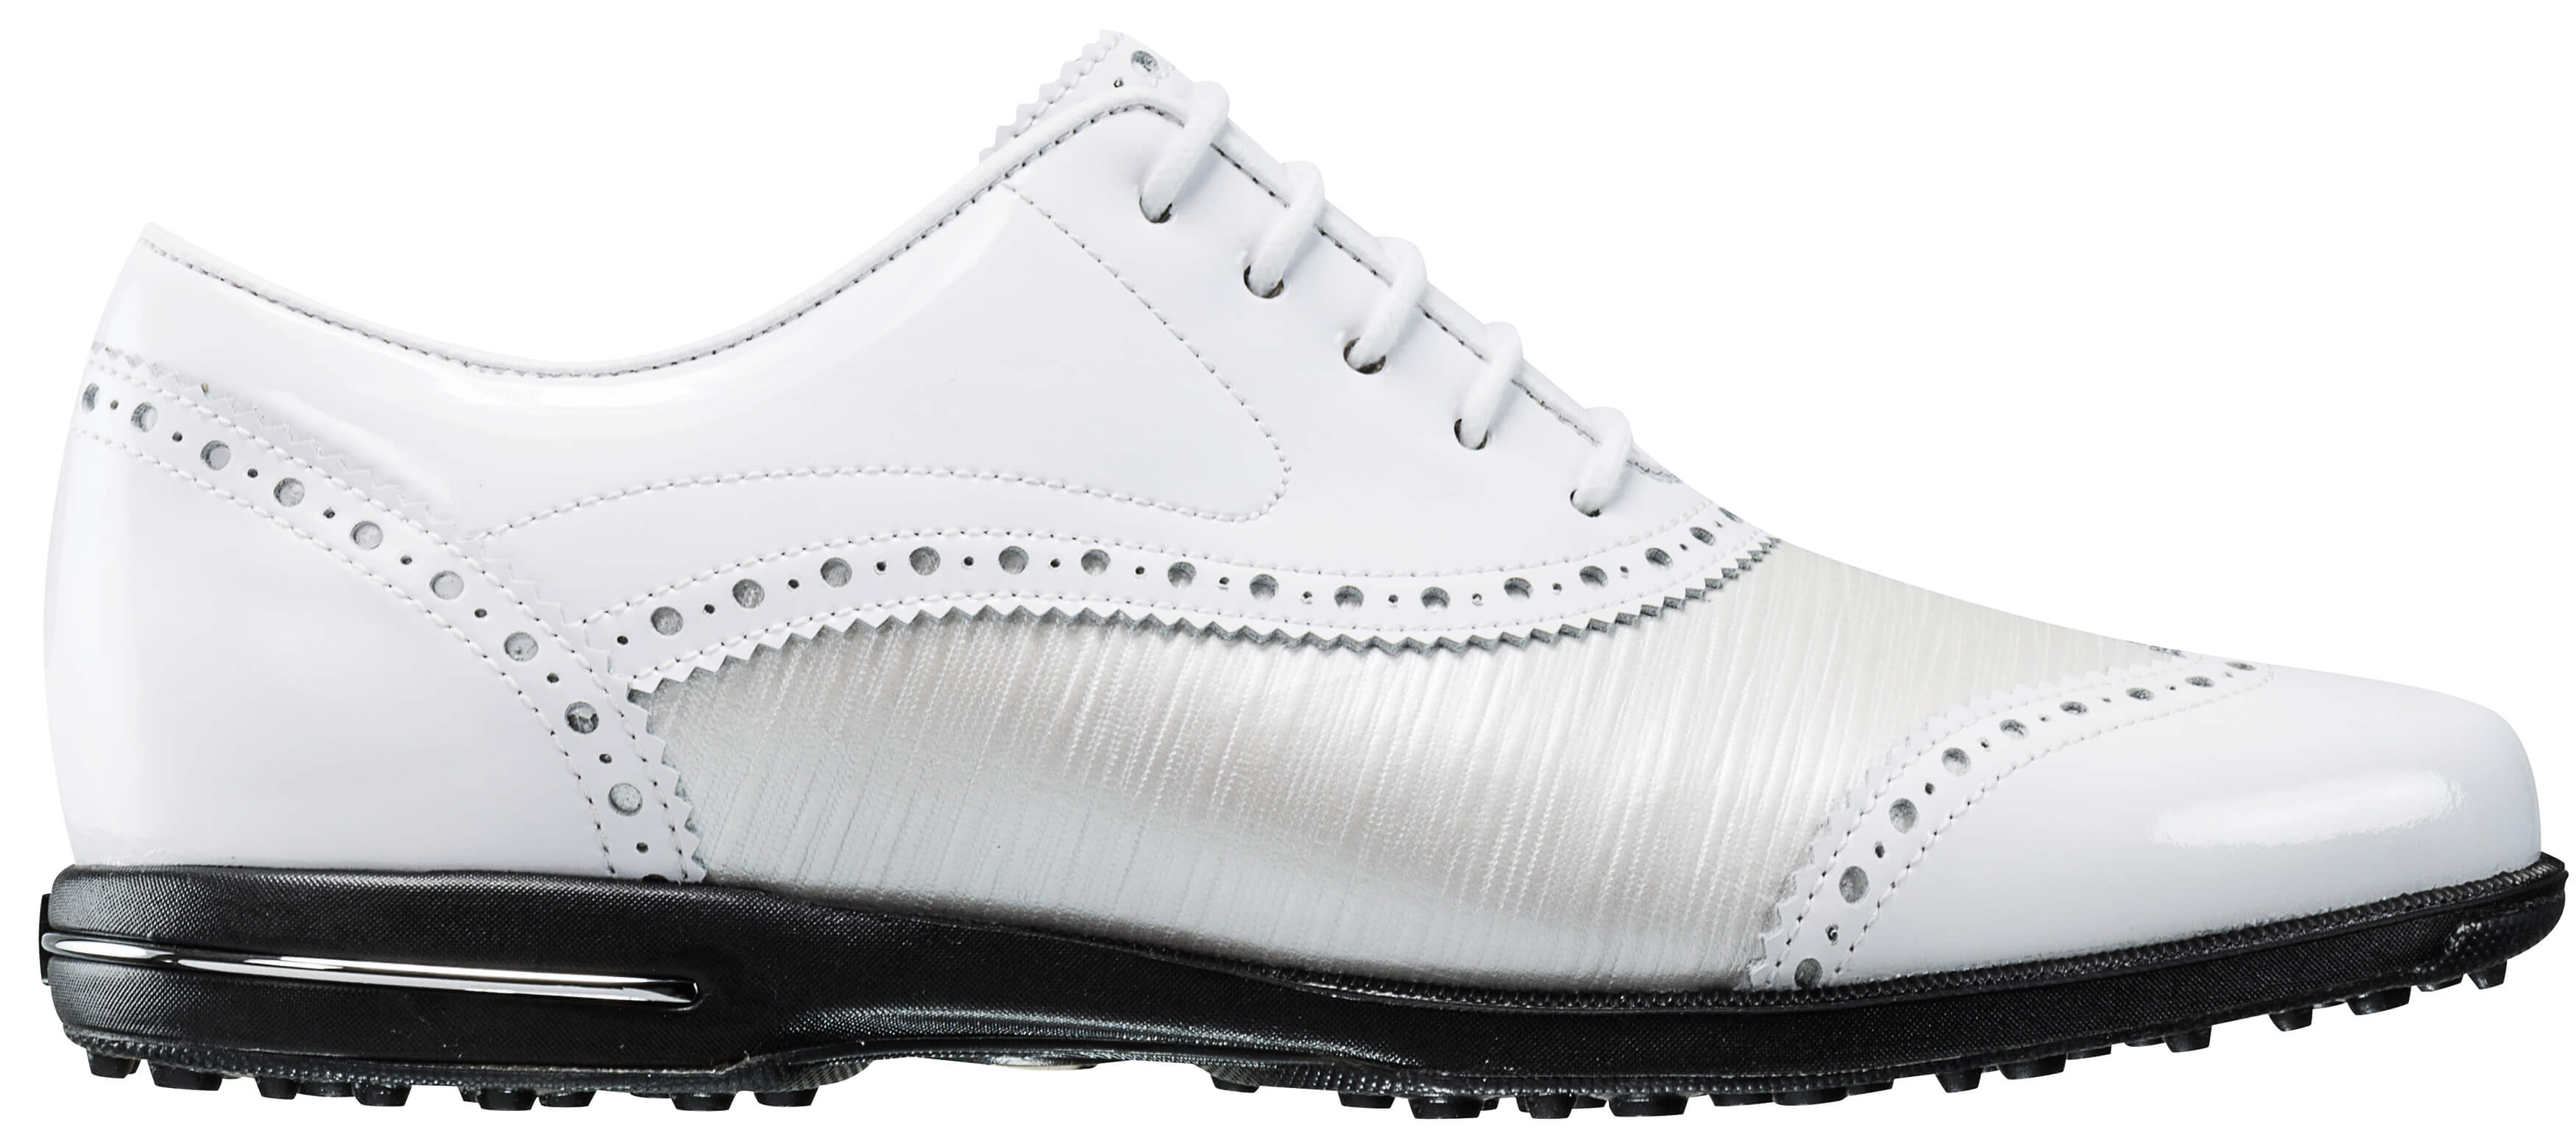 d2db0e9dc4c70 Ladies FootJoy Tailored Collection Womens Golf Shoes New - Choose Color    Size!